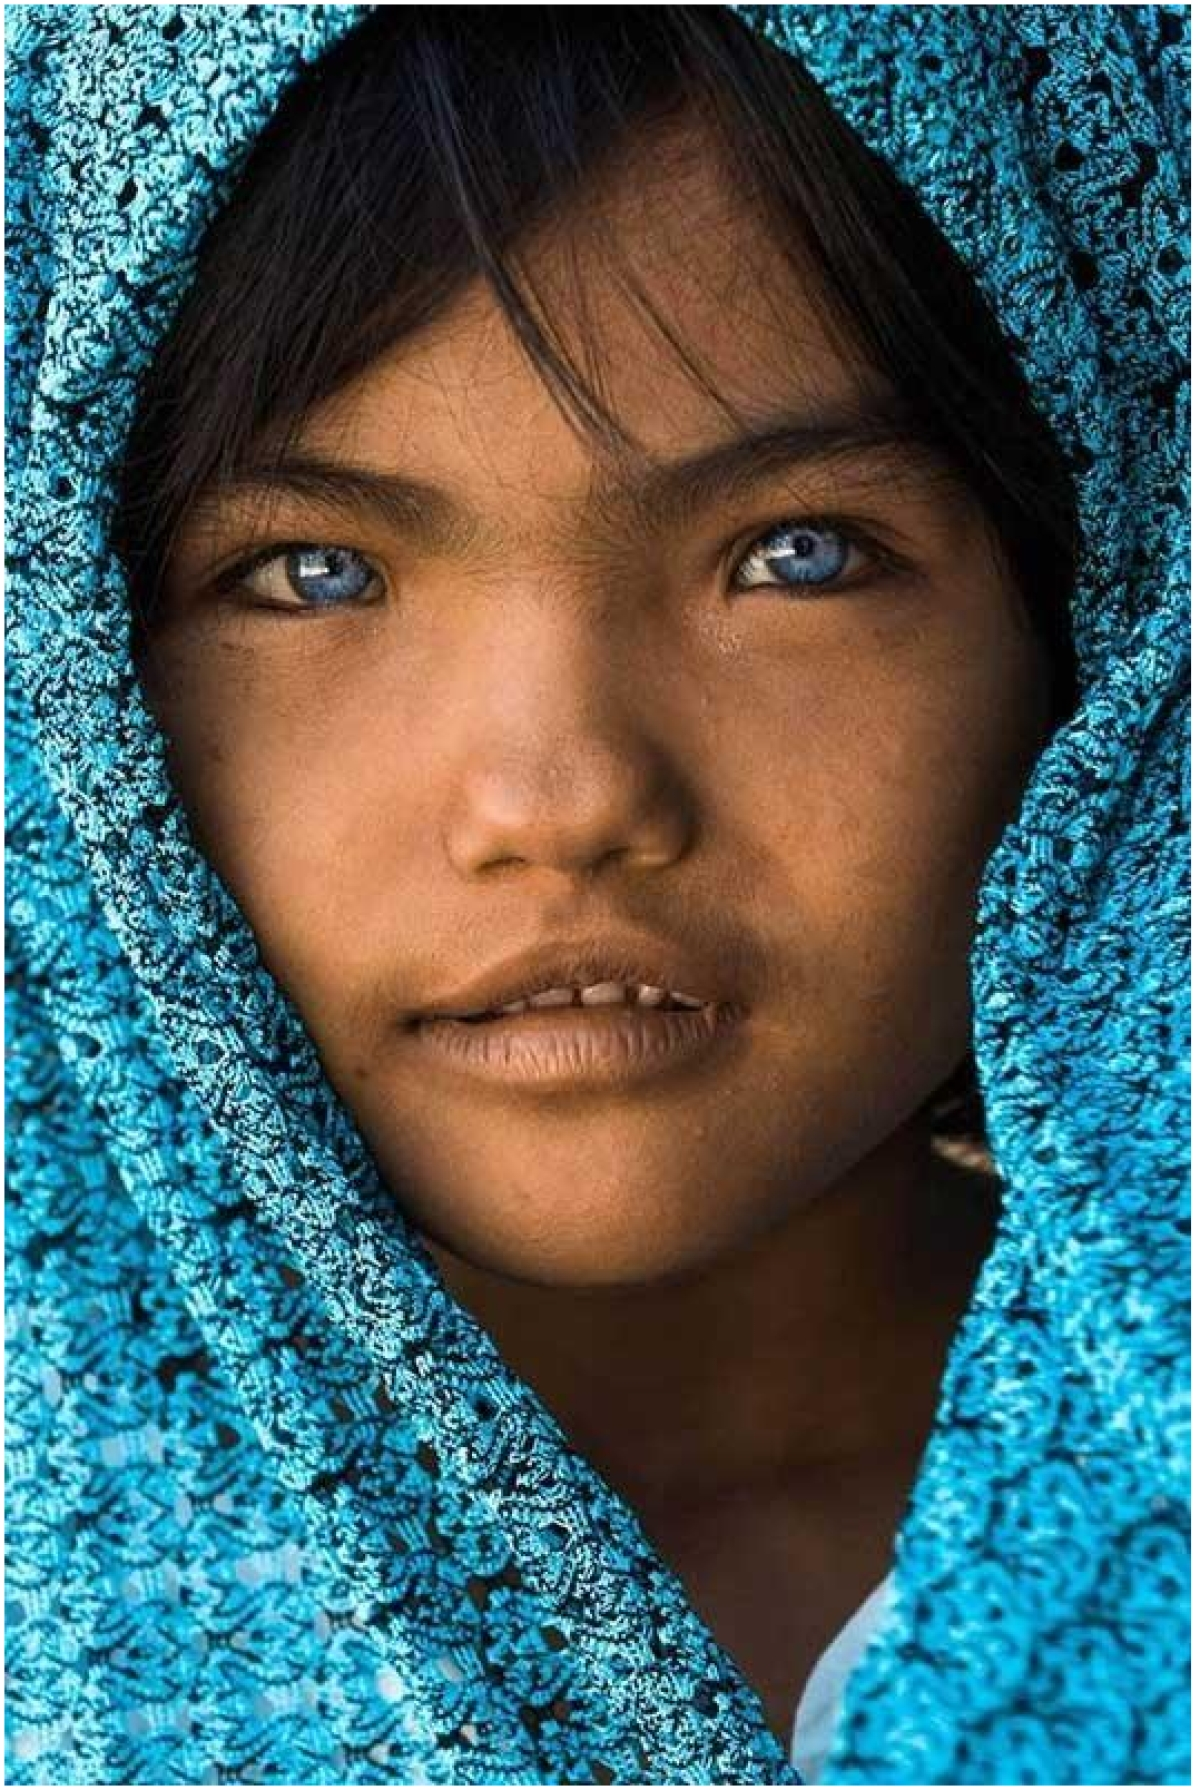 An Phuoc – As the girl is wearing a scarf/hood similar to her distinct eye color, it adds visual interest taking the viewer's attention back to the face.